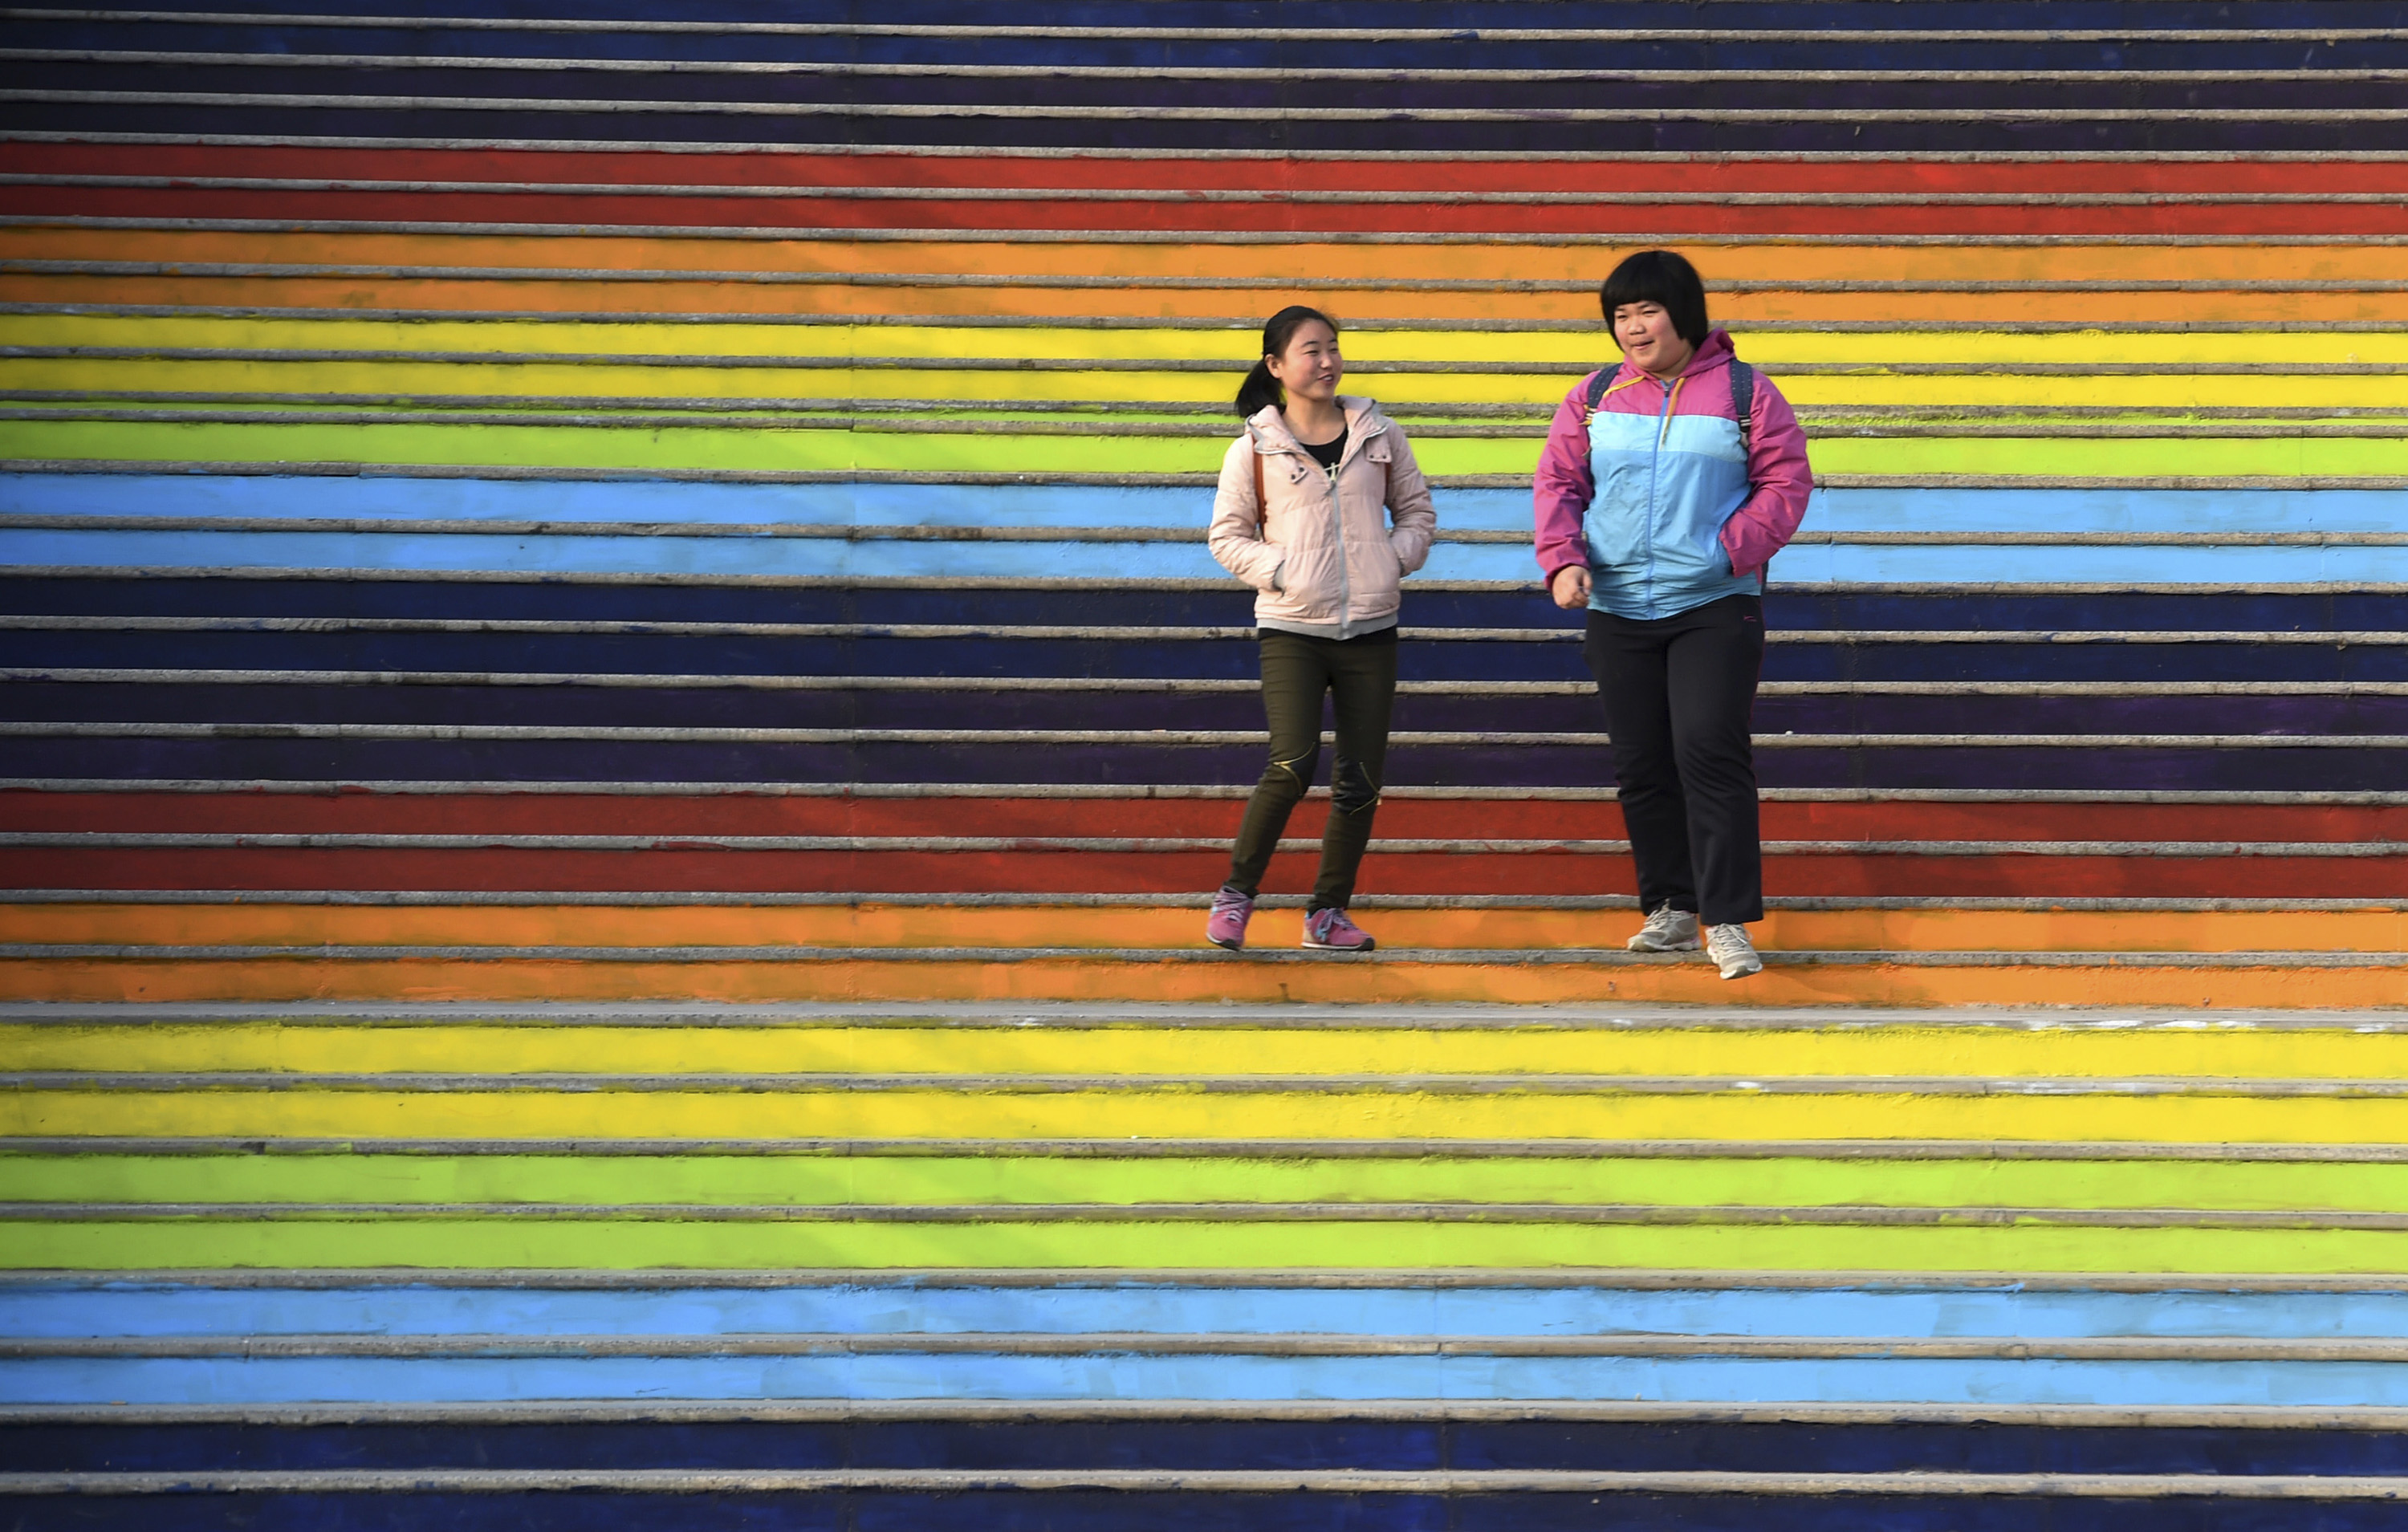 Students walk down a flight of stairs outside a dining hall at the campus of North China University of Water Resources and Electric Power in the Chinese city of Zhengzhou on Jan. 17, 2015